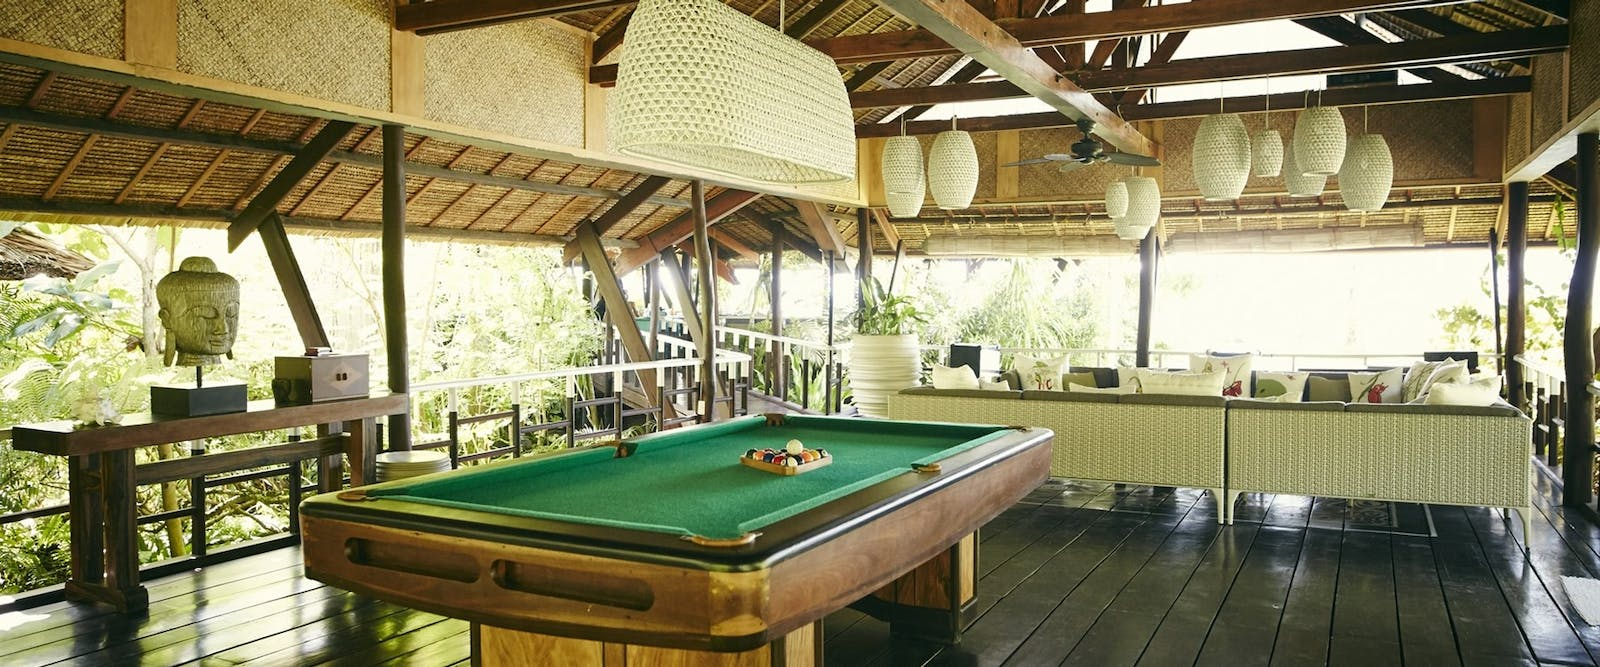 billiards at Nay Palad Hideaway, Siargoa